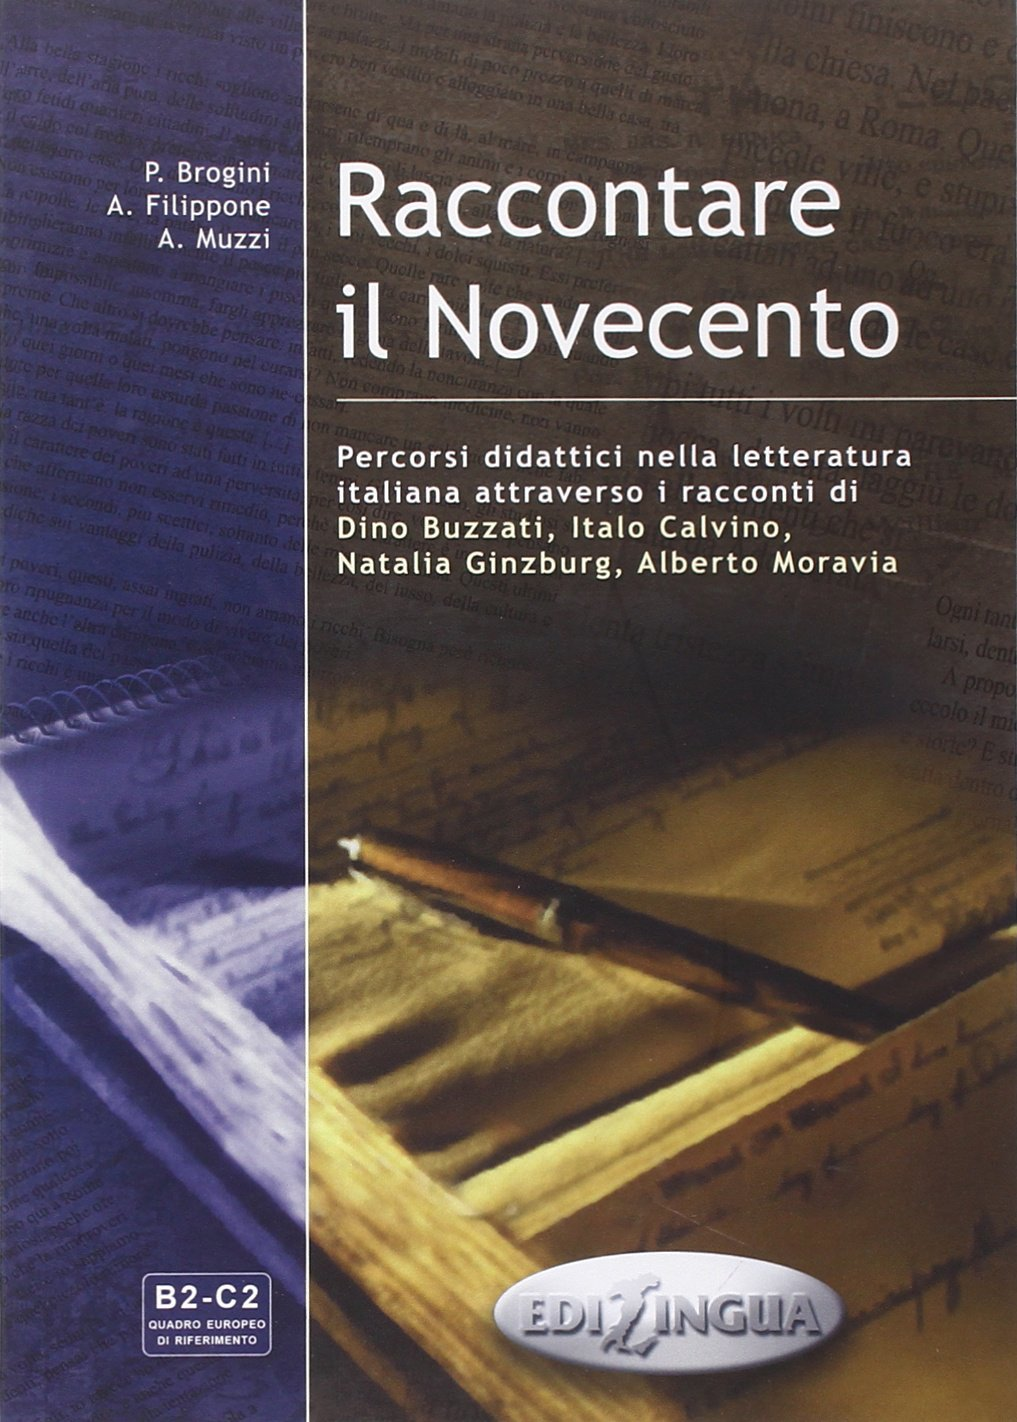 Raccontare il Novecento - 116 pages